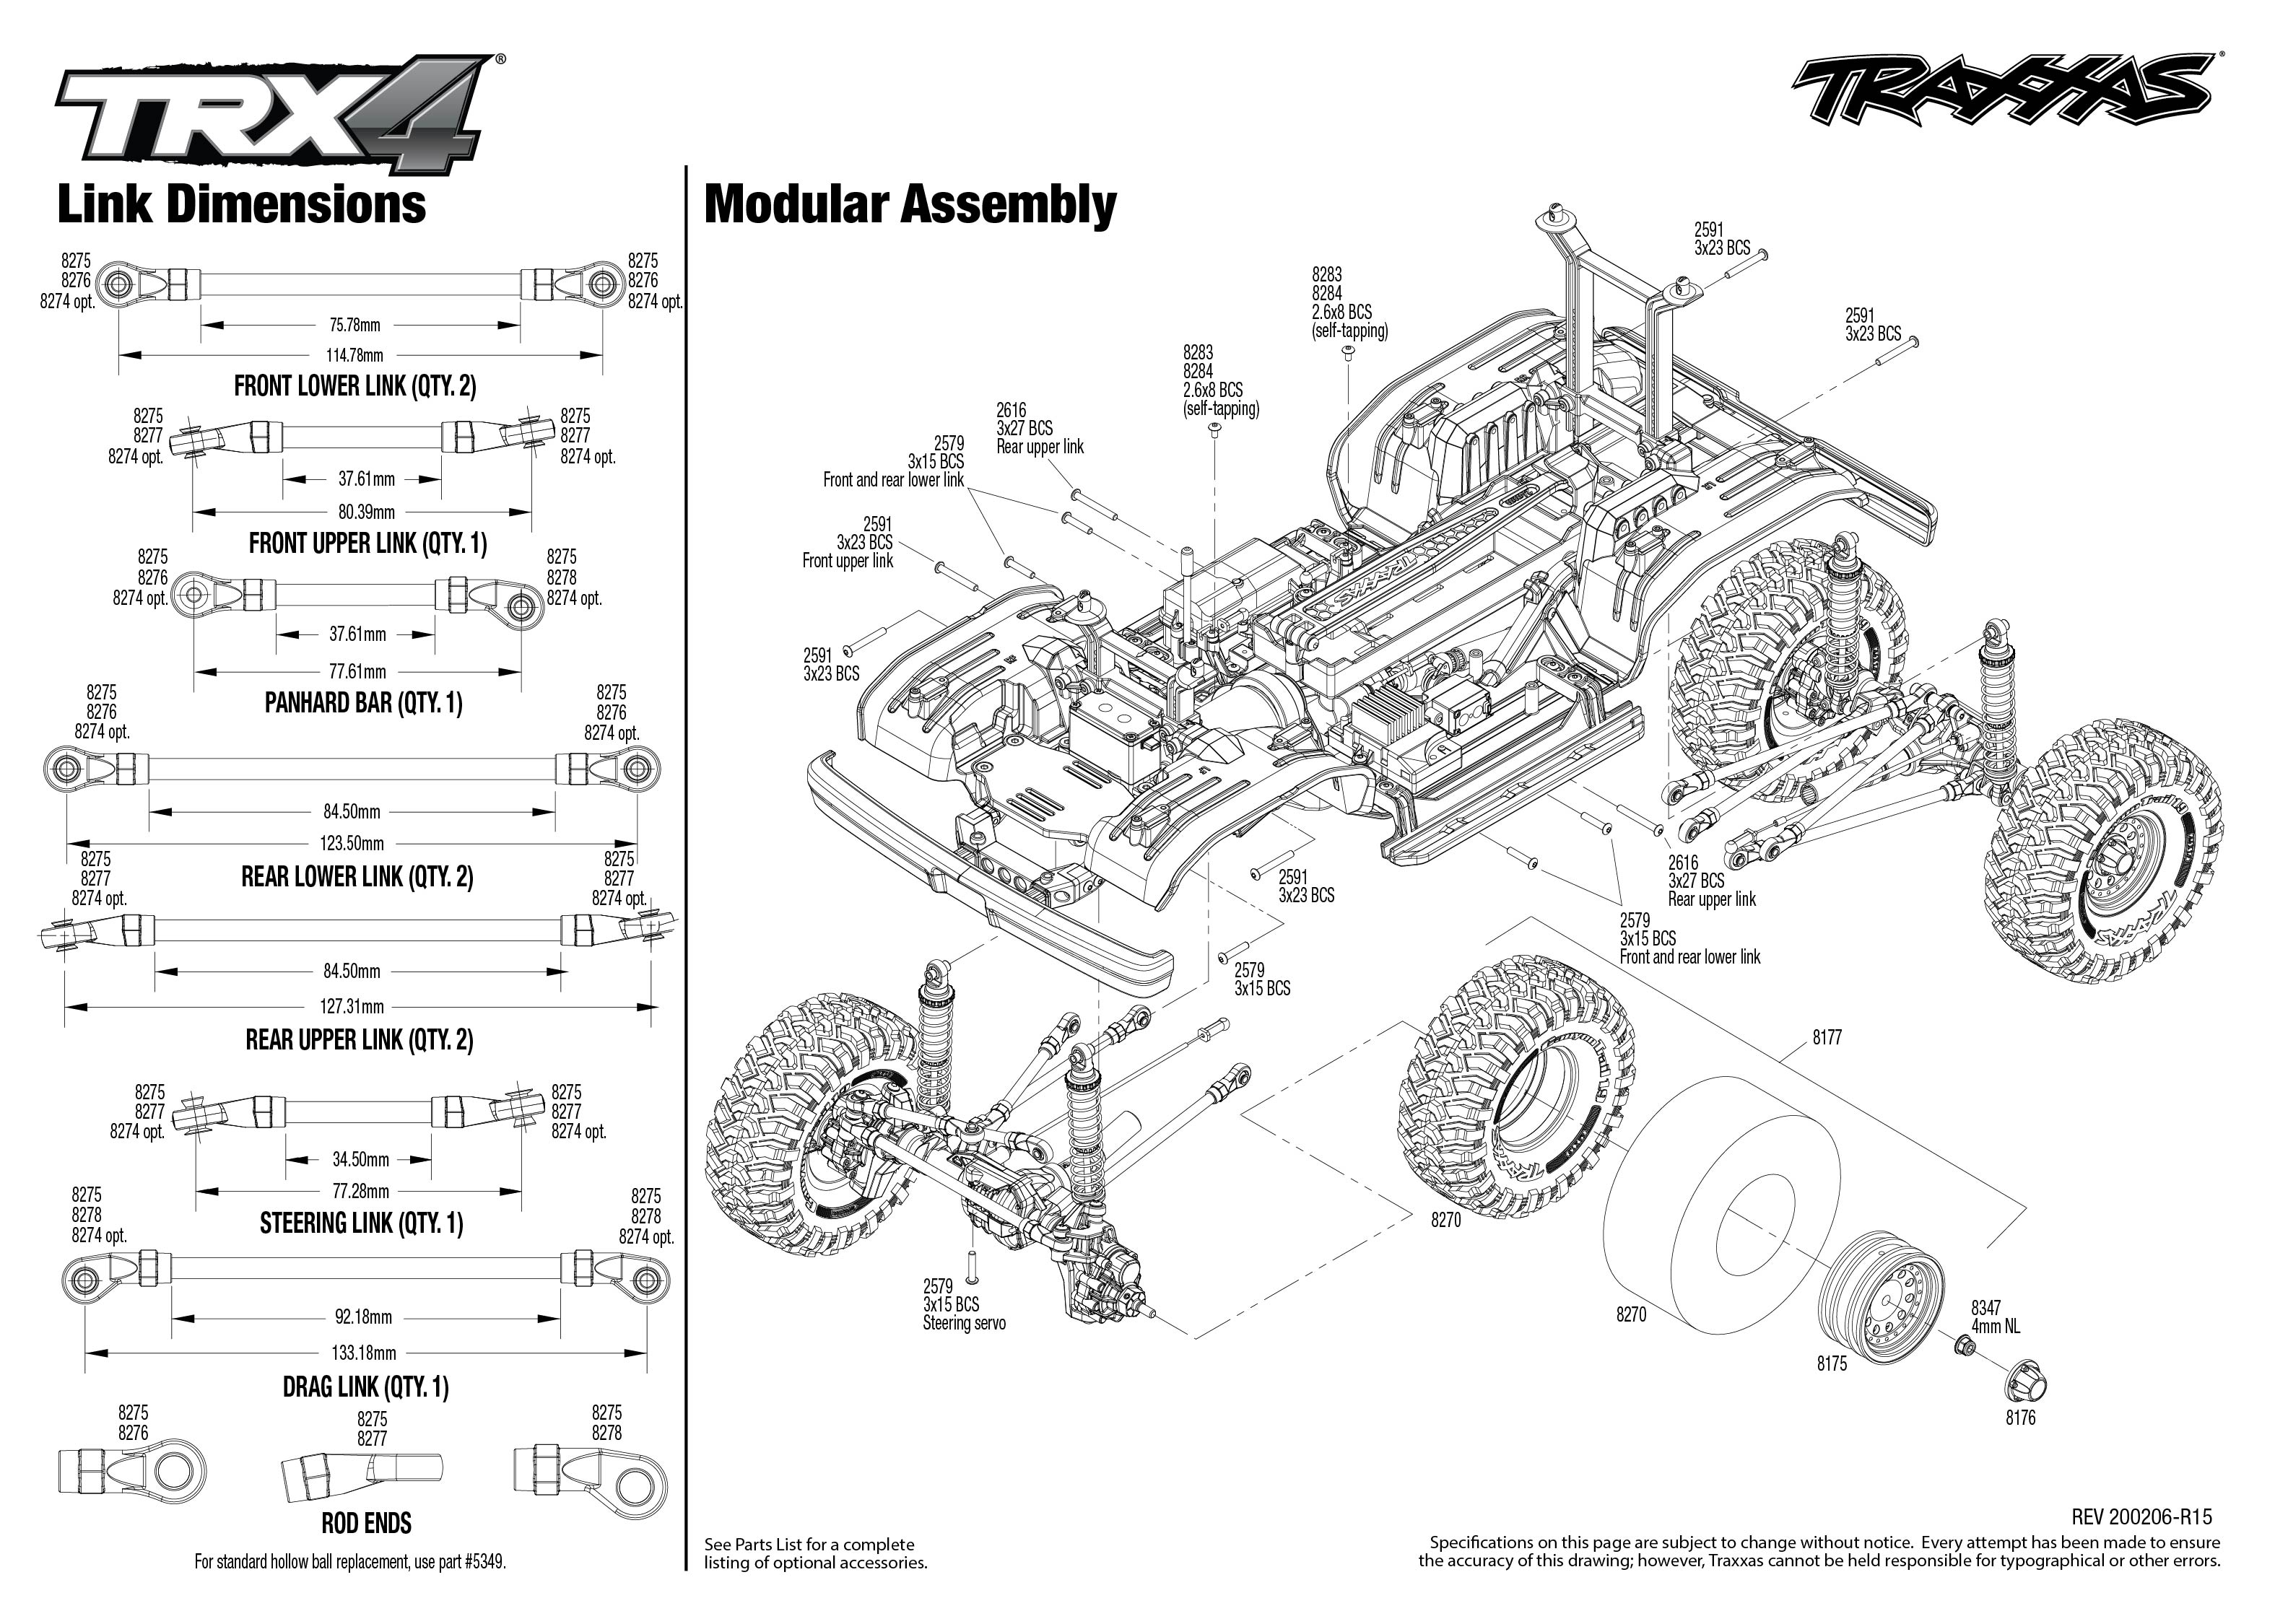 TRX-4 Ford Bronco (82046-4) Modular Assembly Exploded View